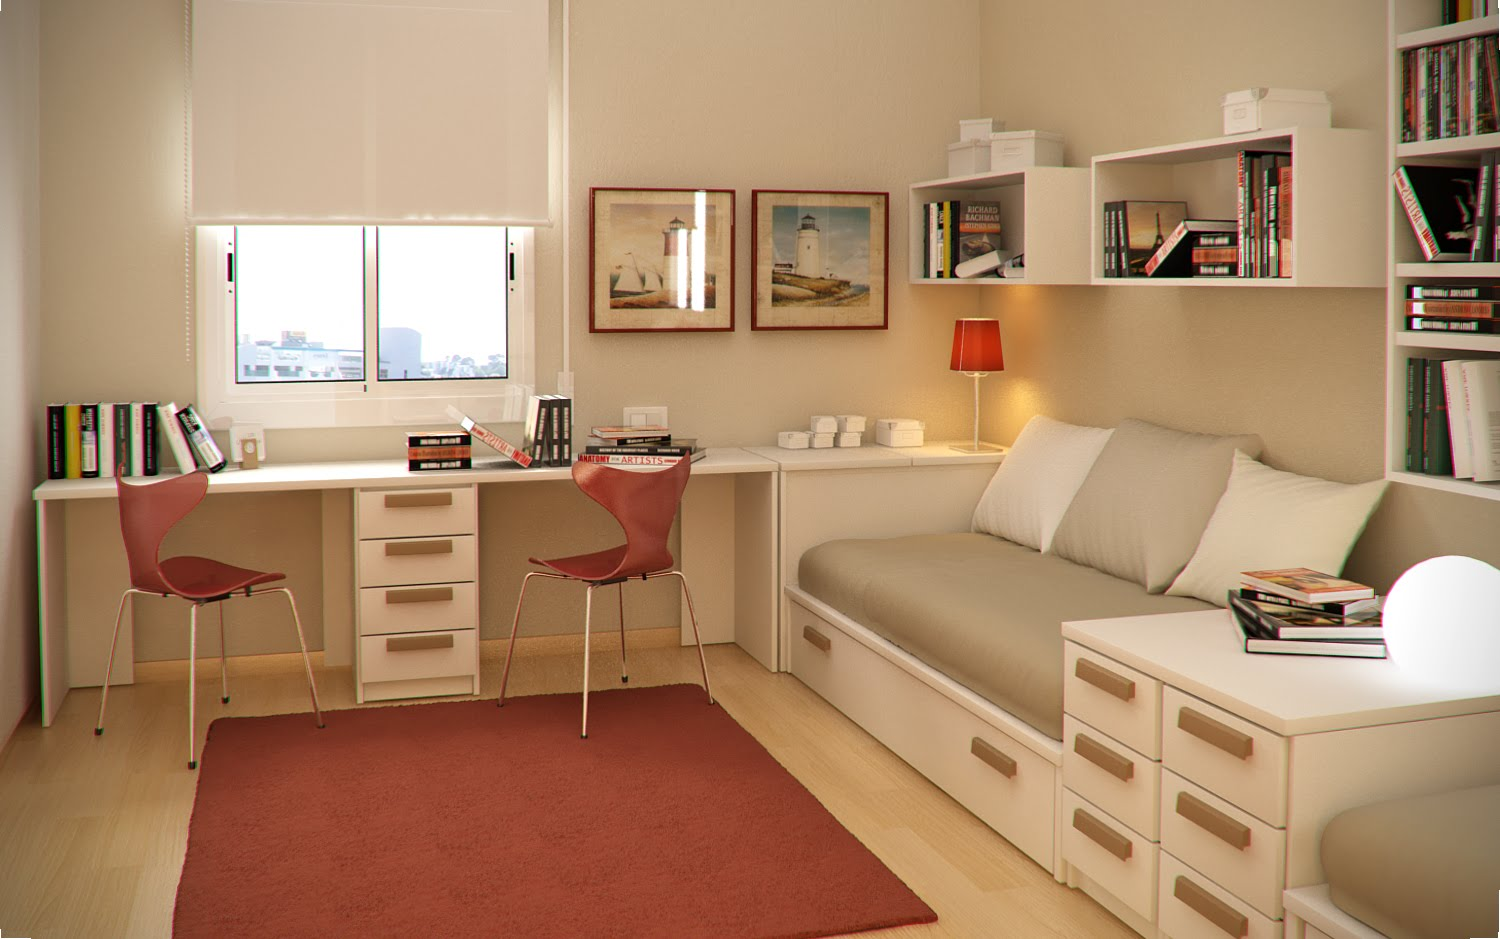 Small Floorspace Kids Rooms on Room.decor  id=62513